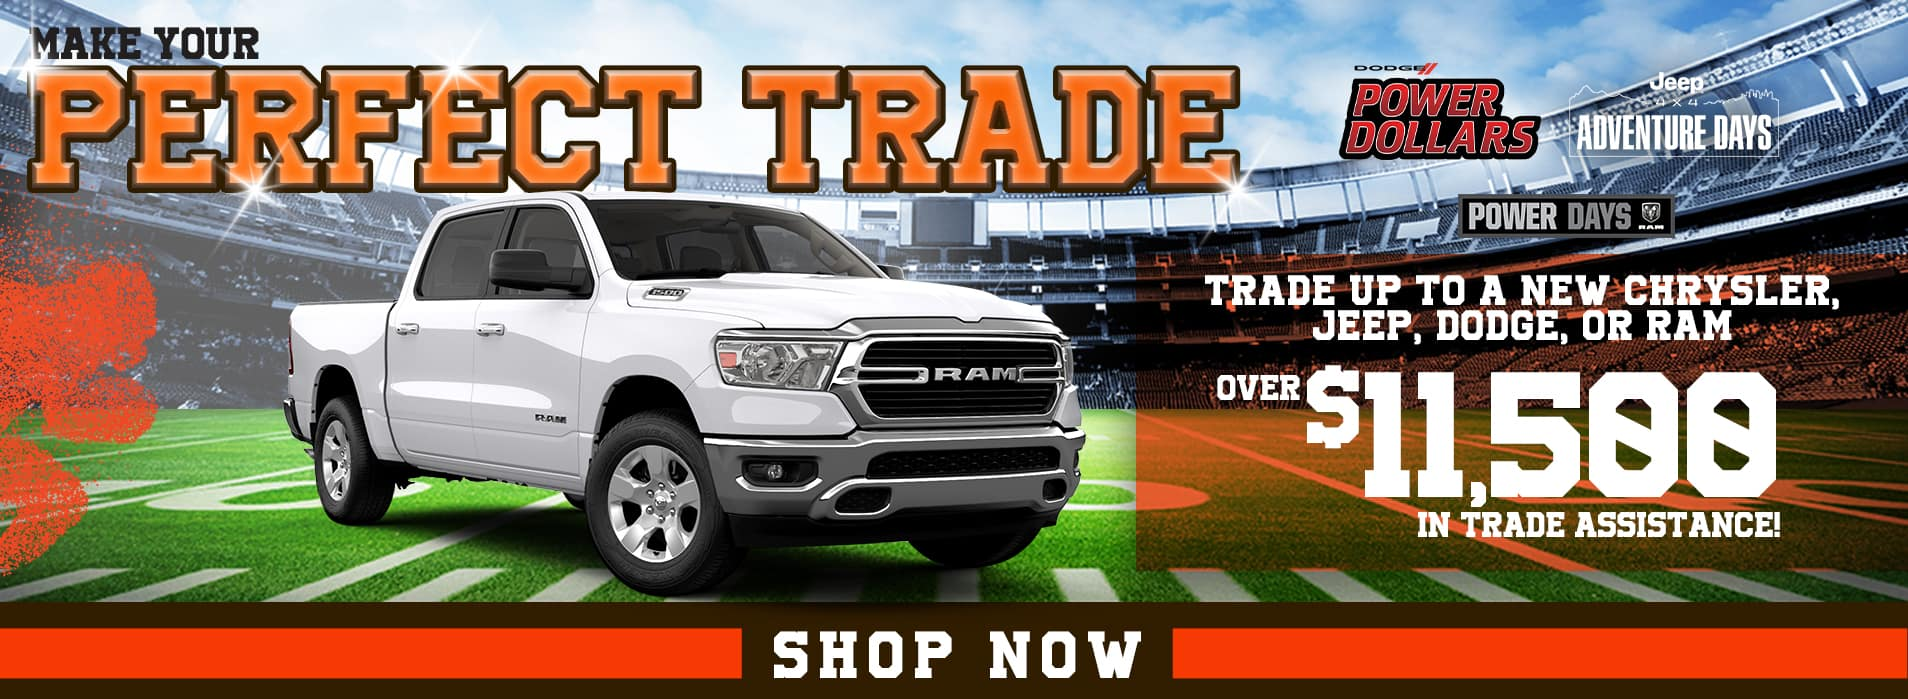 Make the Perfect Trade | Up to $11,500 in trade assistance